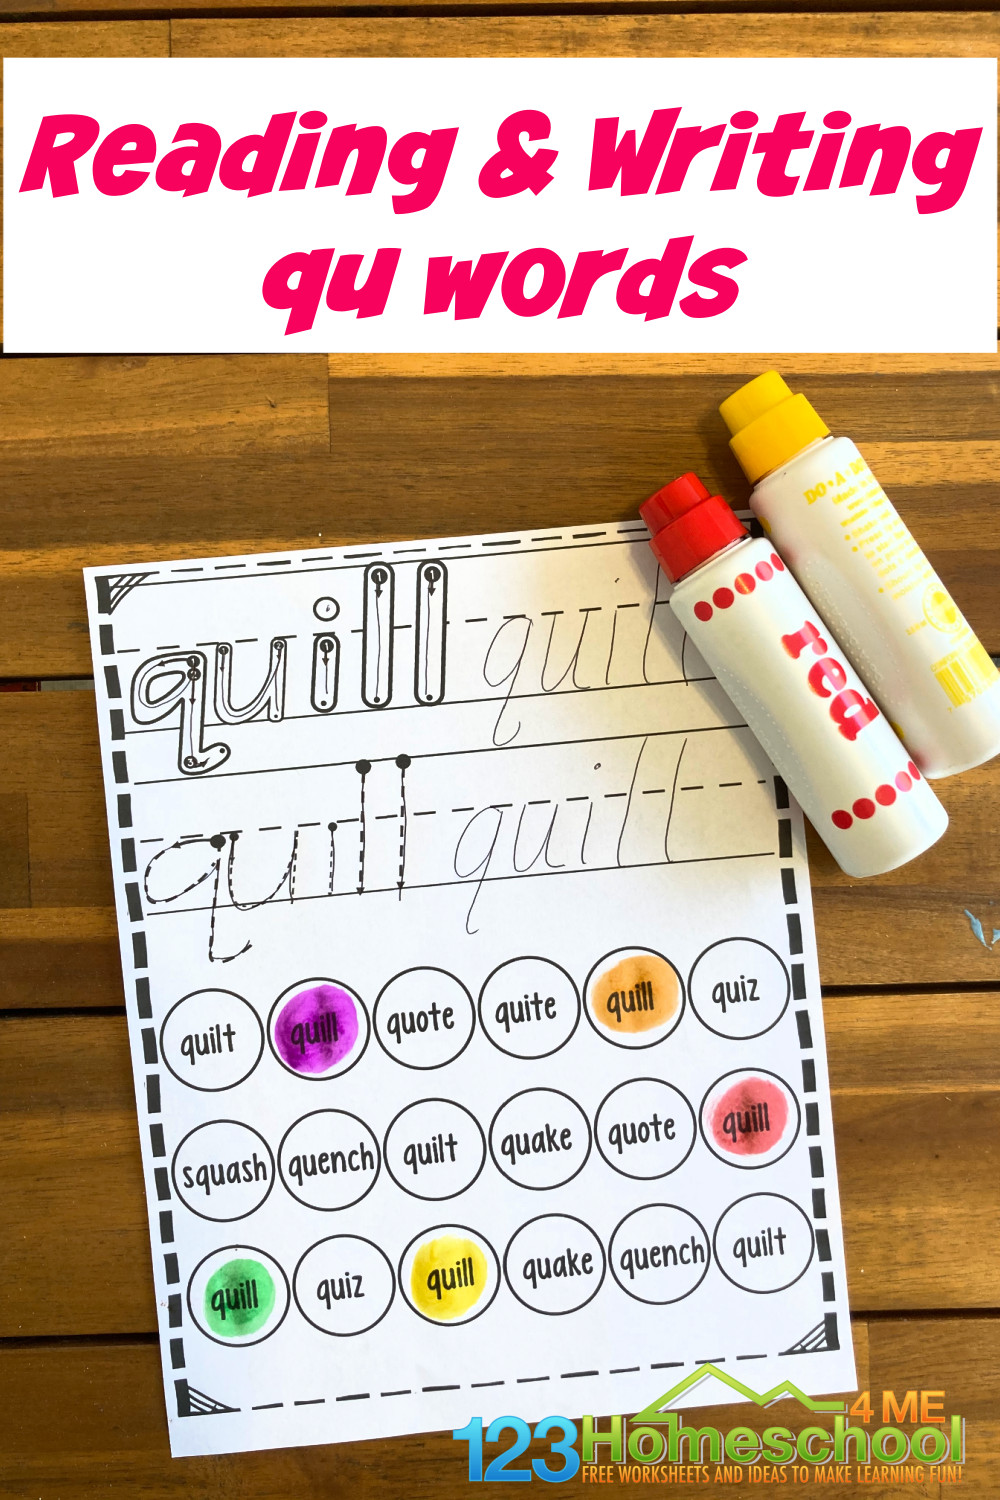 medium resolution of FREE Reading and Writing qu words